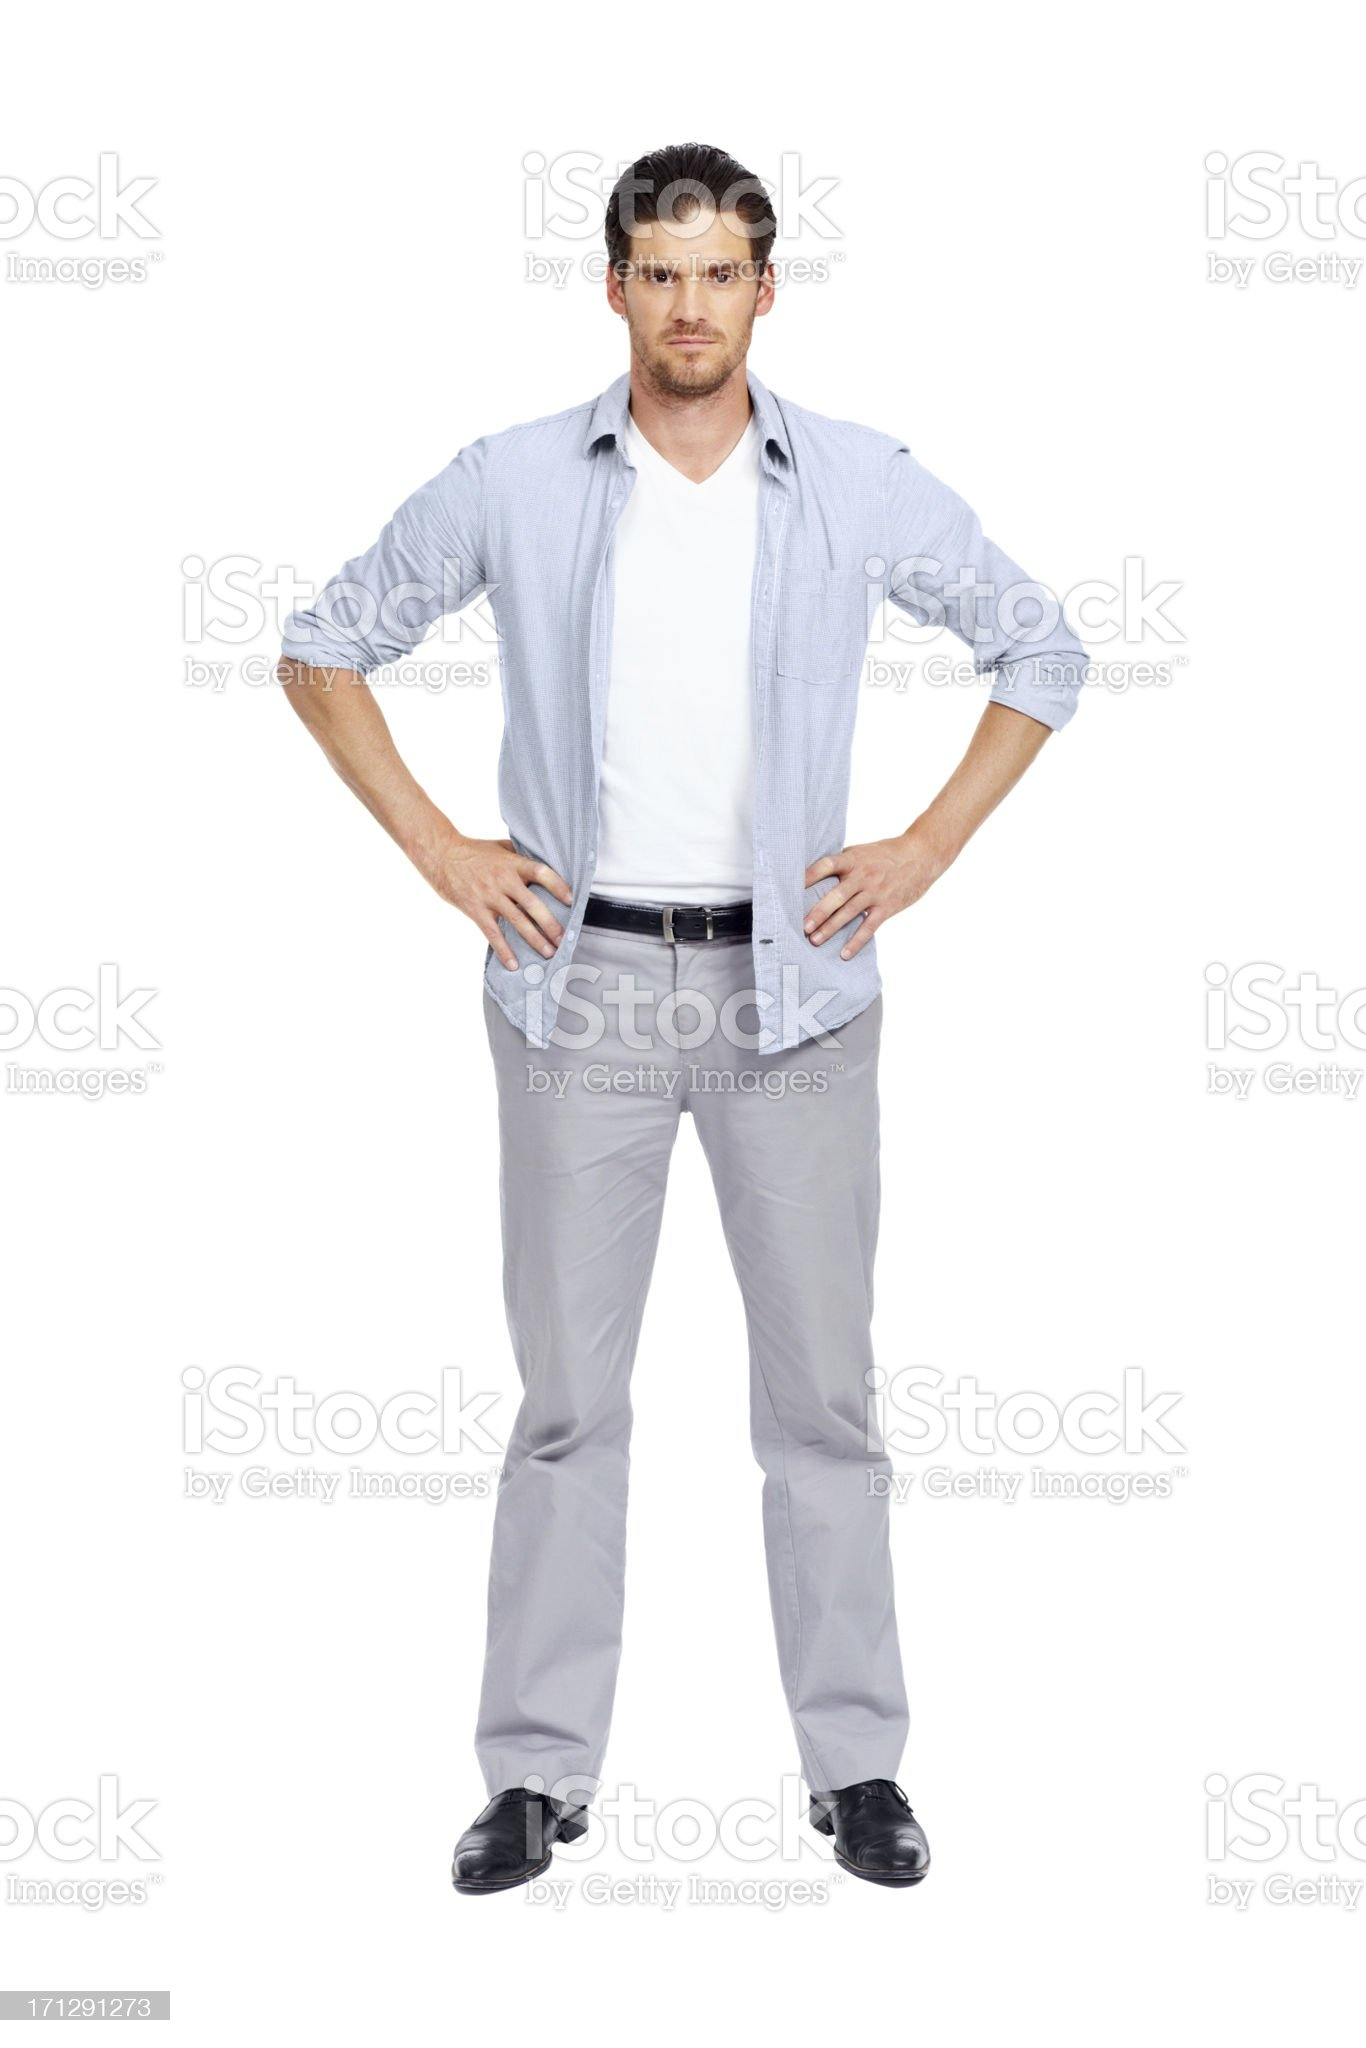 Standing firm for the regular guy royalty-free stock photo